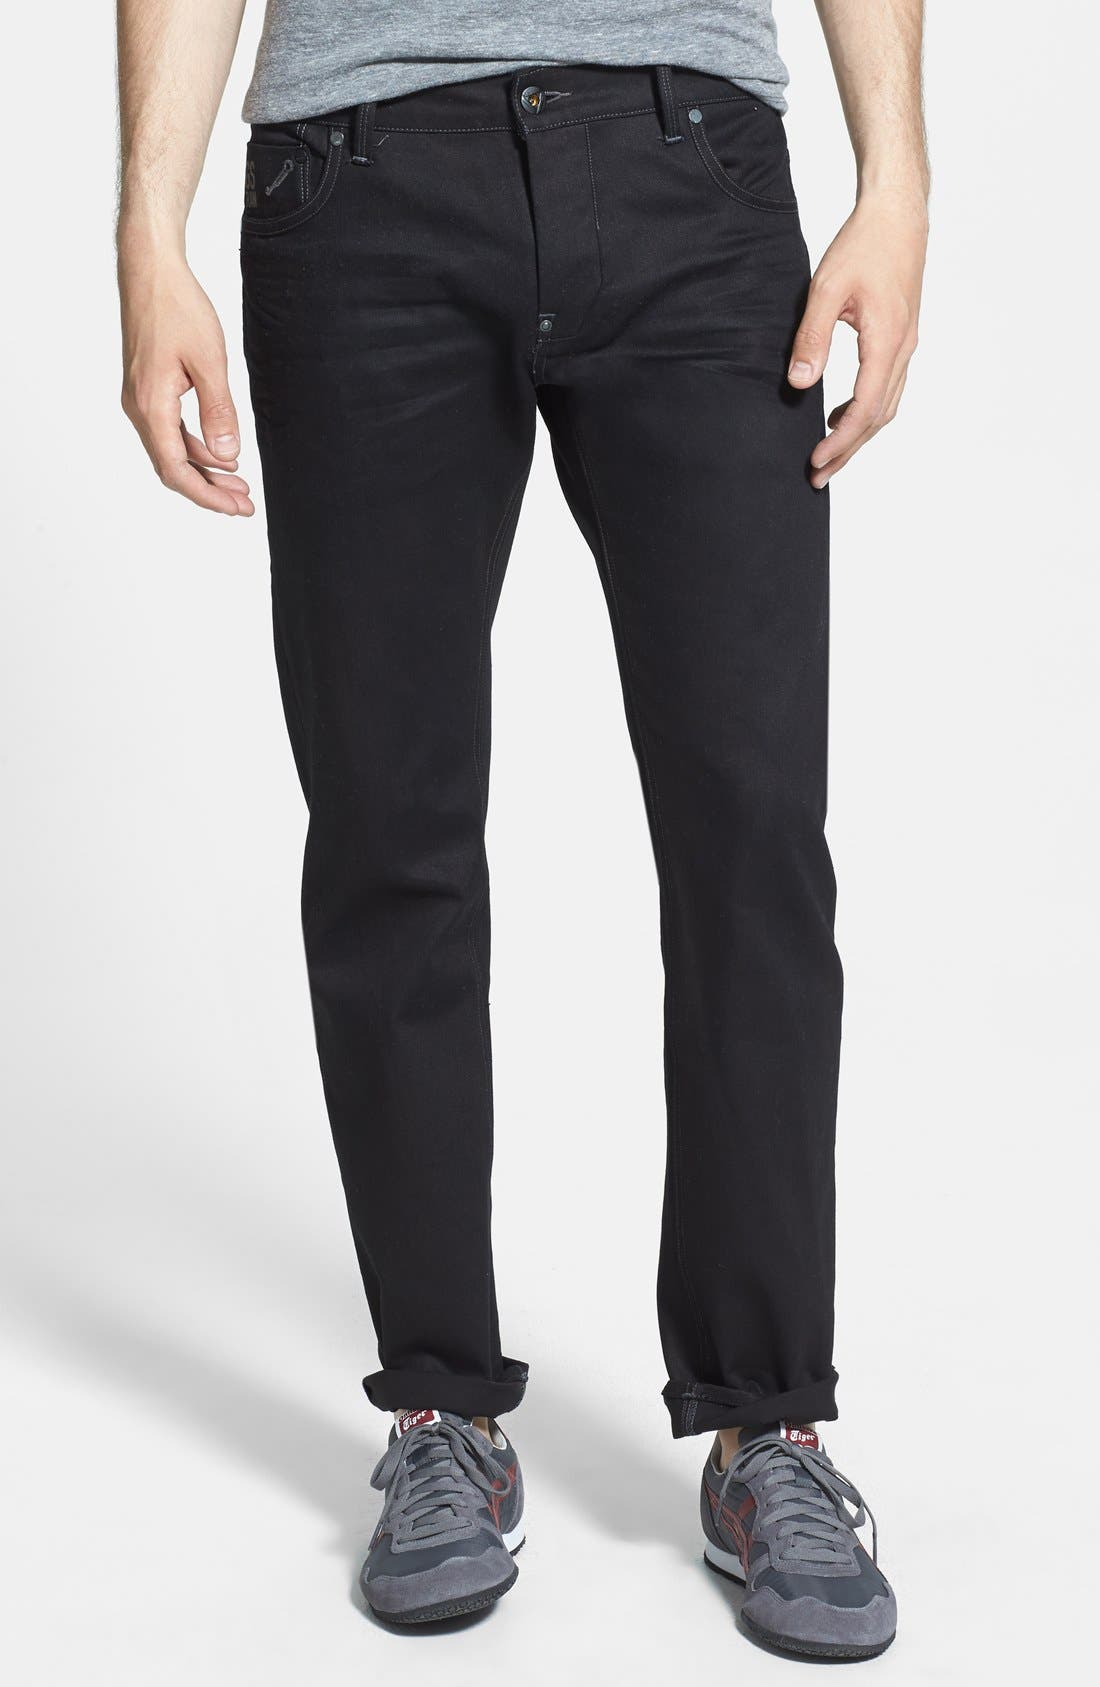 Alternate Image 1 Selected - G-Star Raw 'Defend Edington' Slouchy Slim Fit Jeans (3D Raw)